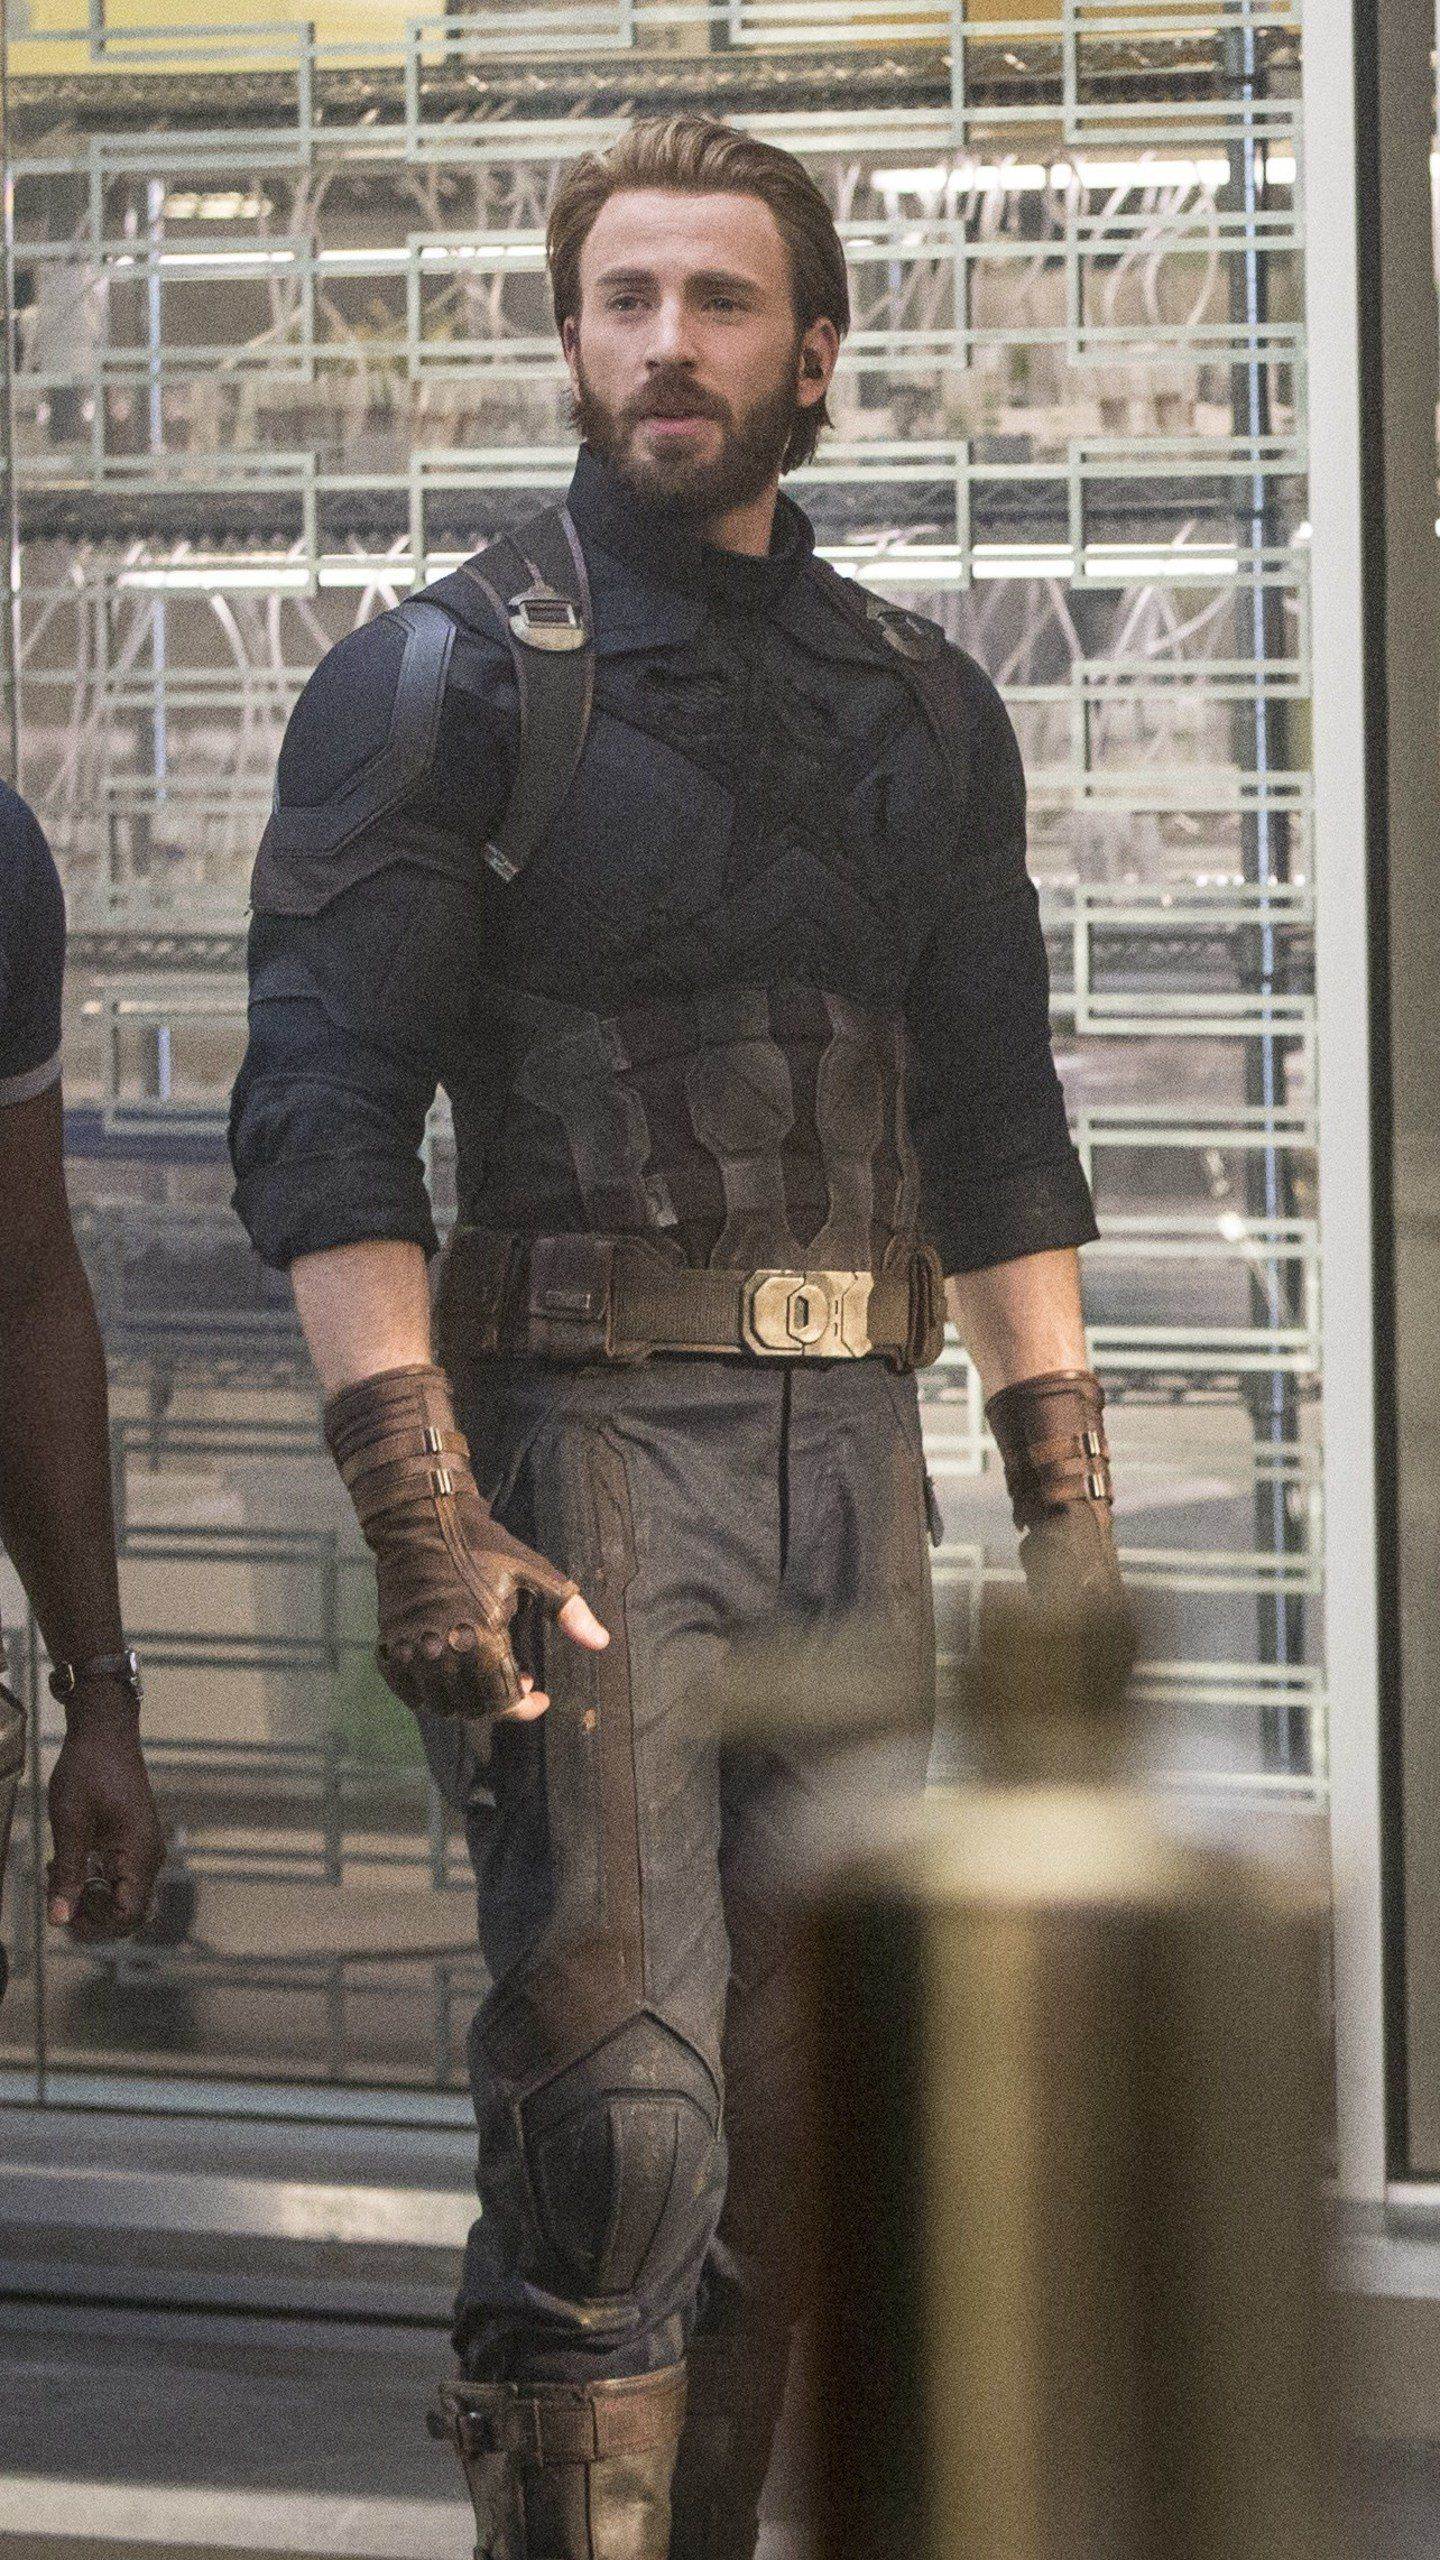 Captain Black Widow Rhode Avengers Infinity War 2018 Hd Movies Wallpapers Photos And Pictures Chris Evans Chris Evans Captain America Chris Evans Shirtless